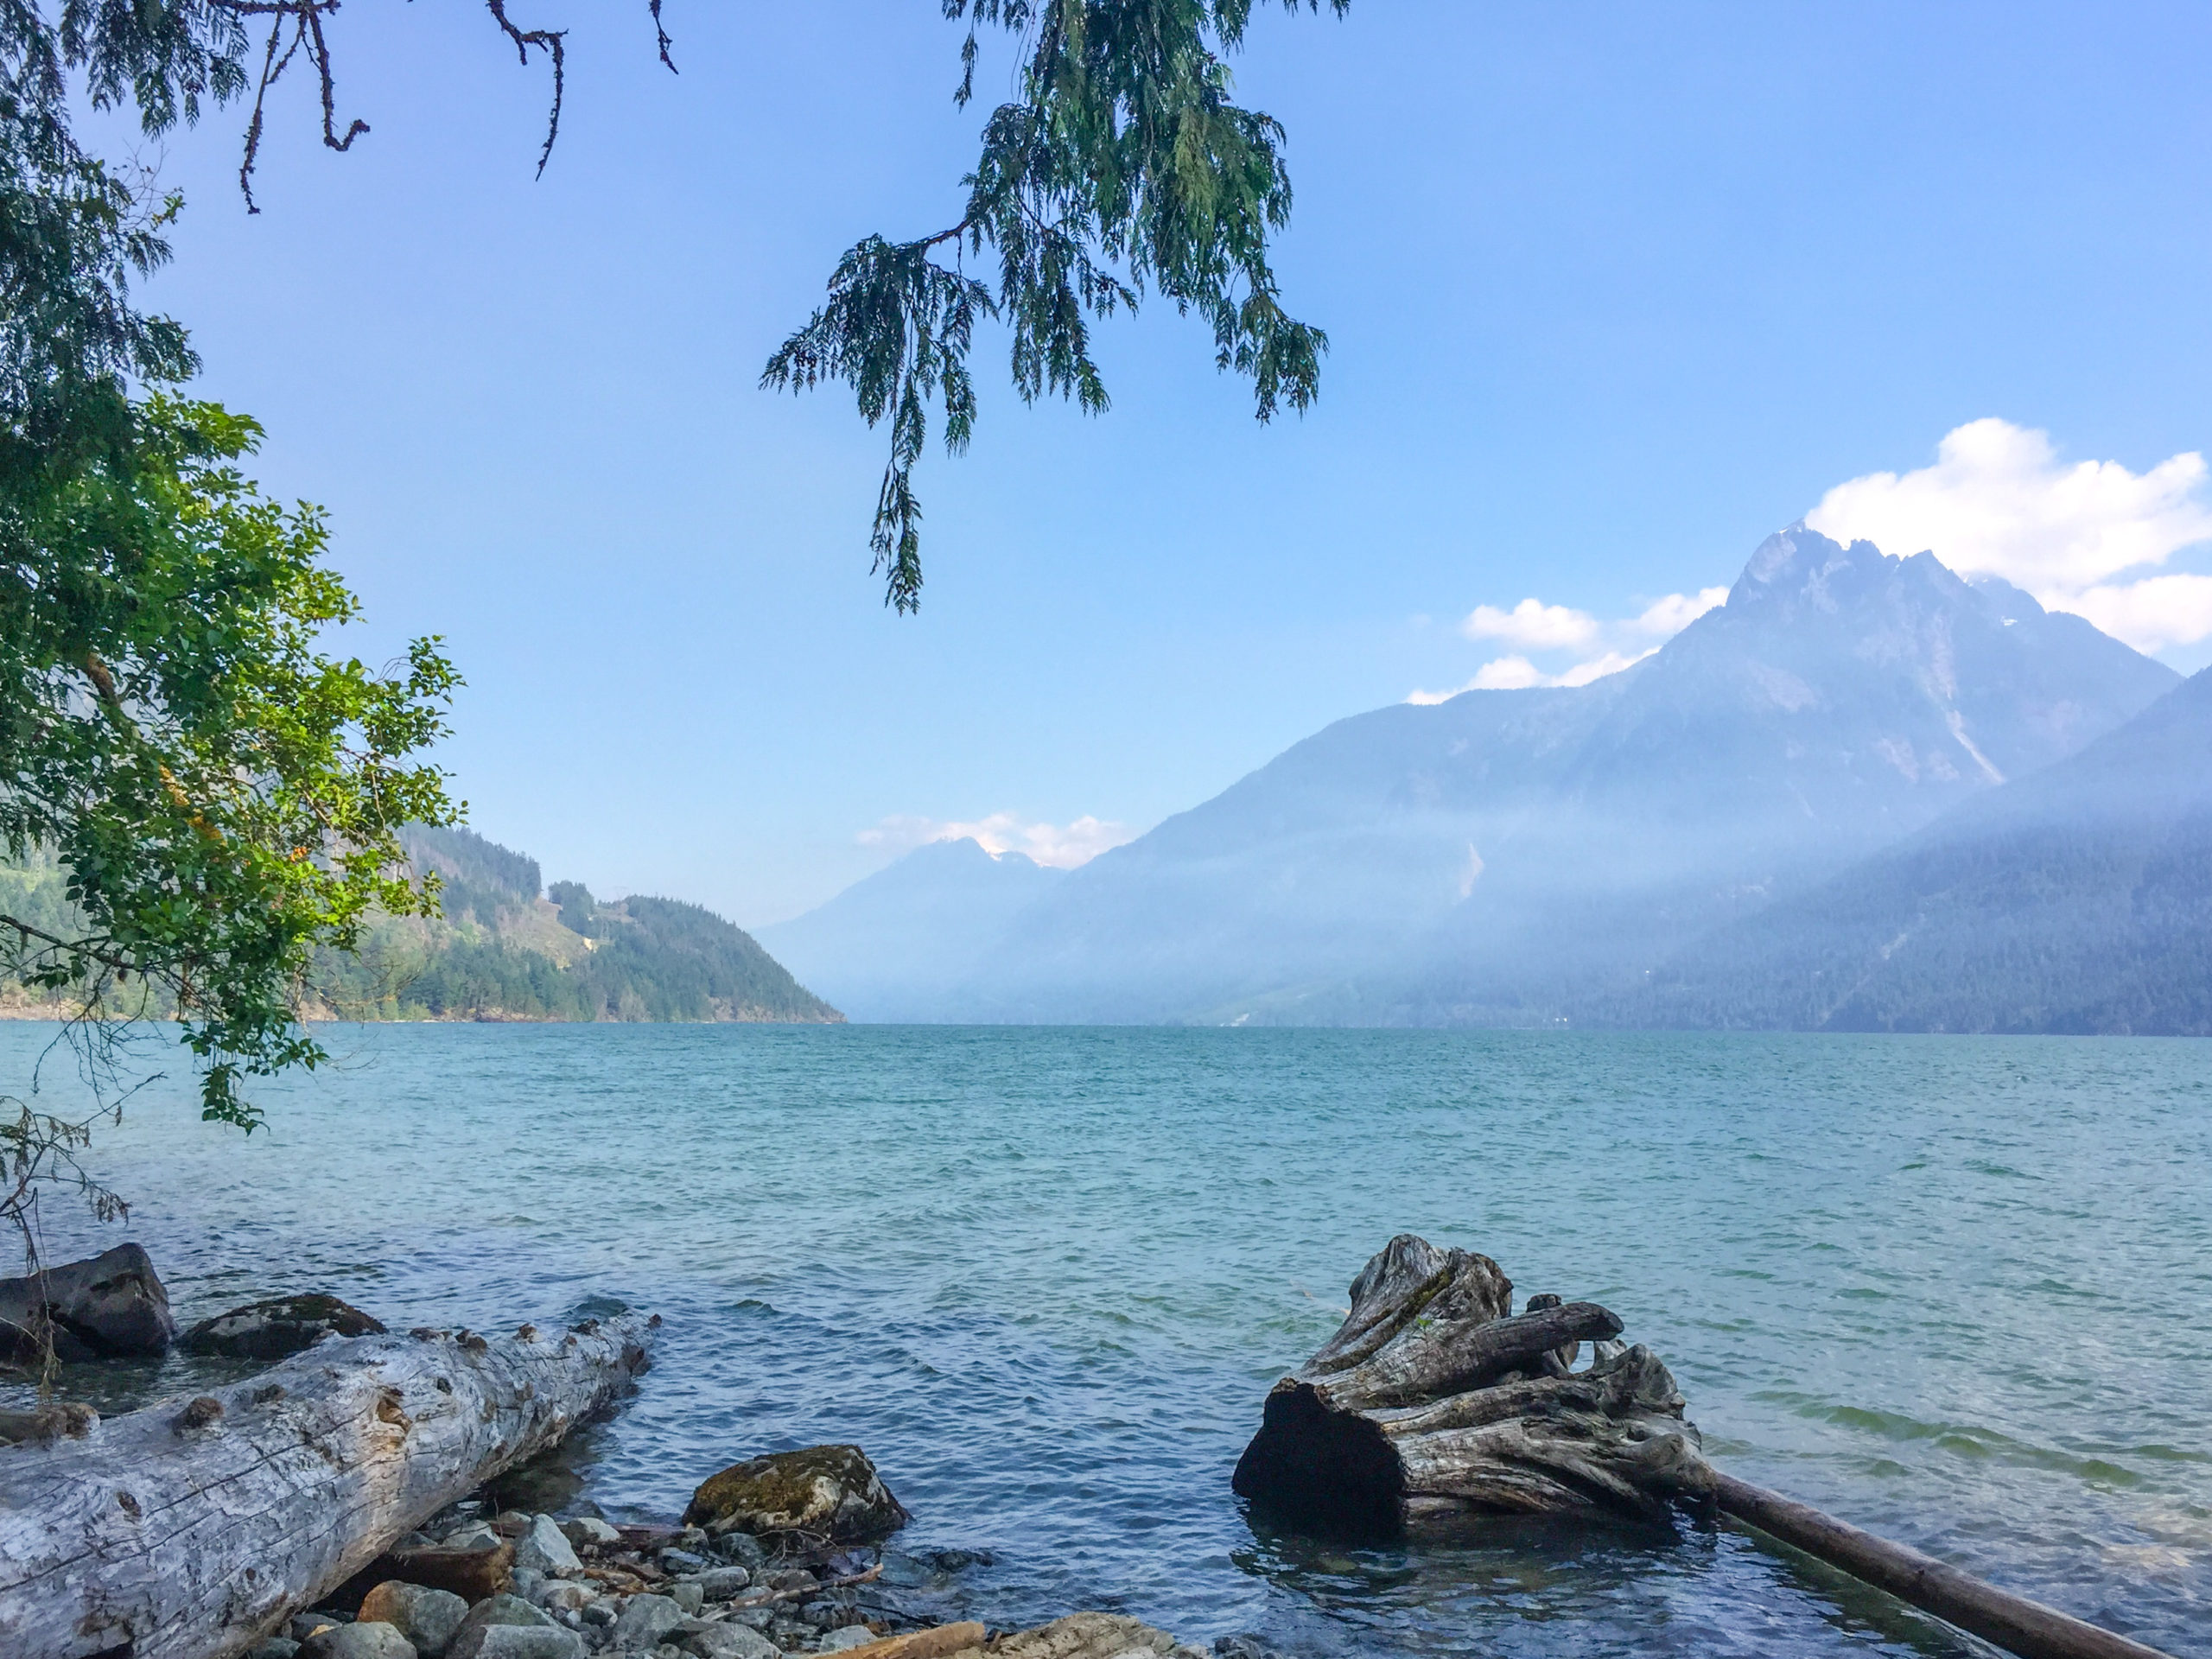 harrison lake view with mountains